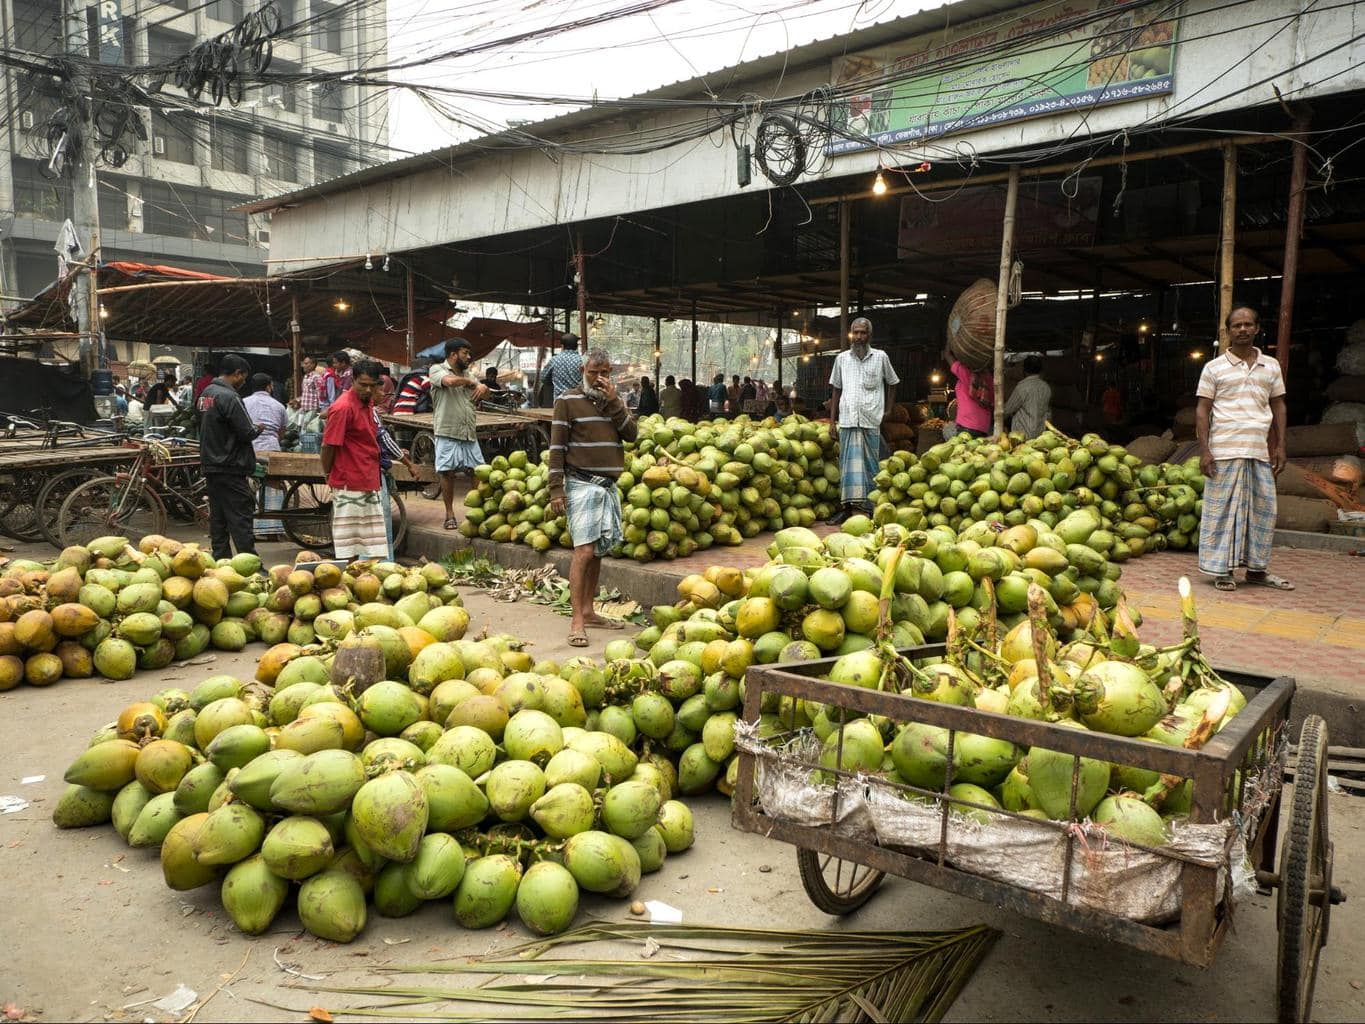 Slim sellers at the market